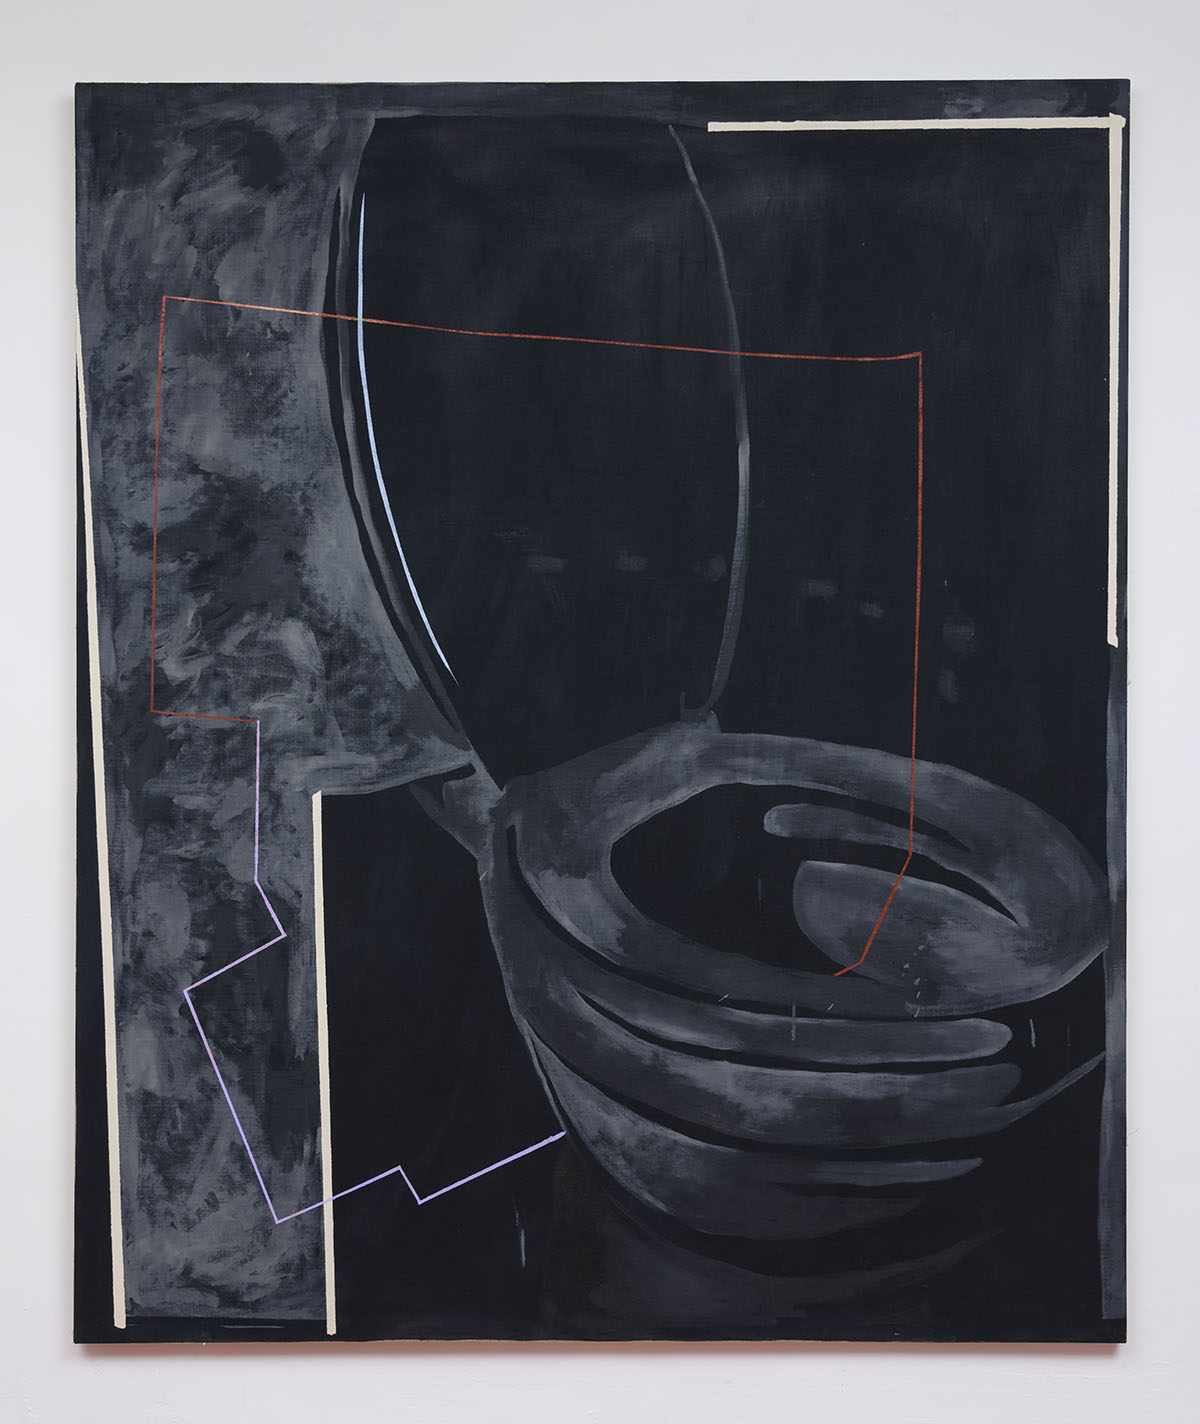 Mathieu Malouf - Big Toilet, 2016, Oil and acrylic on canvas, 72 x 60 inches